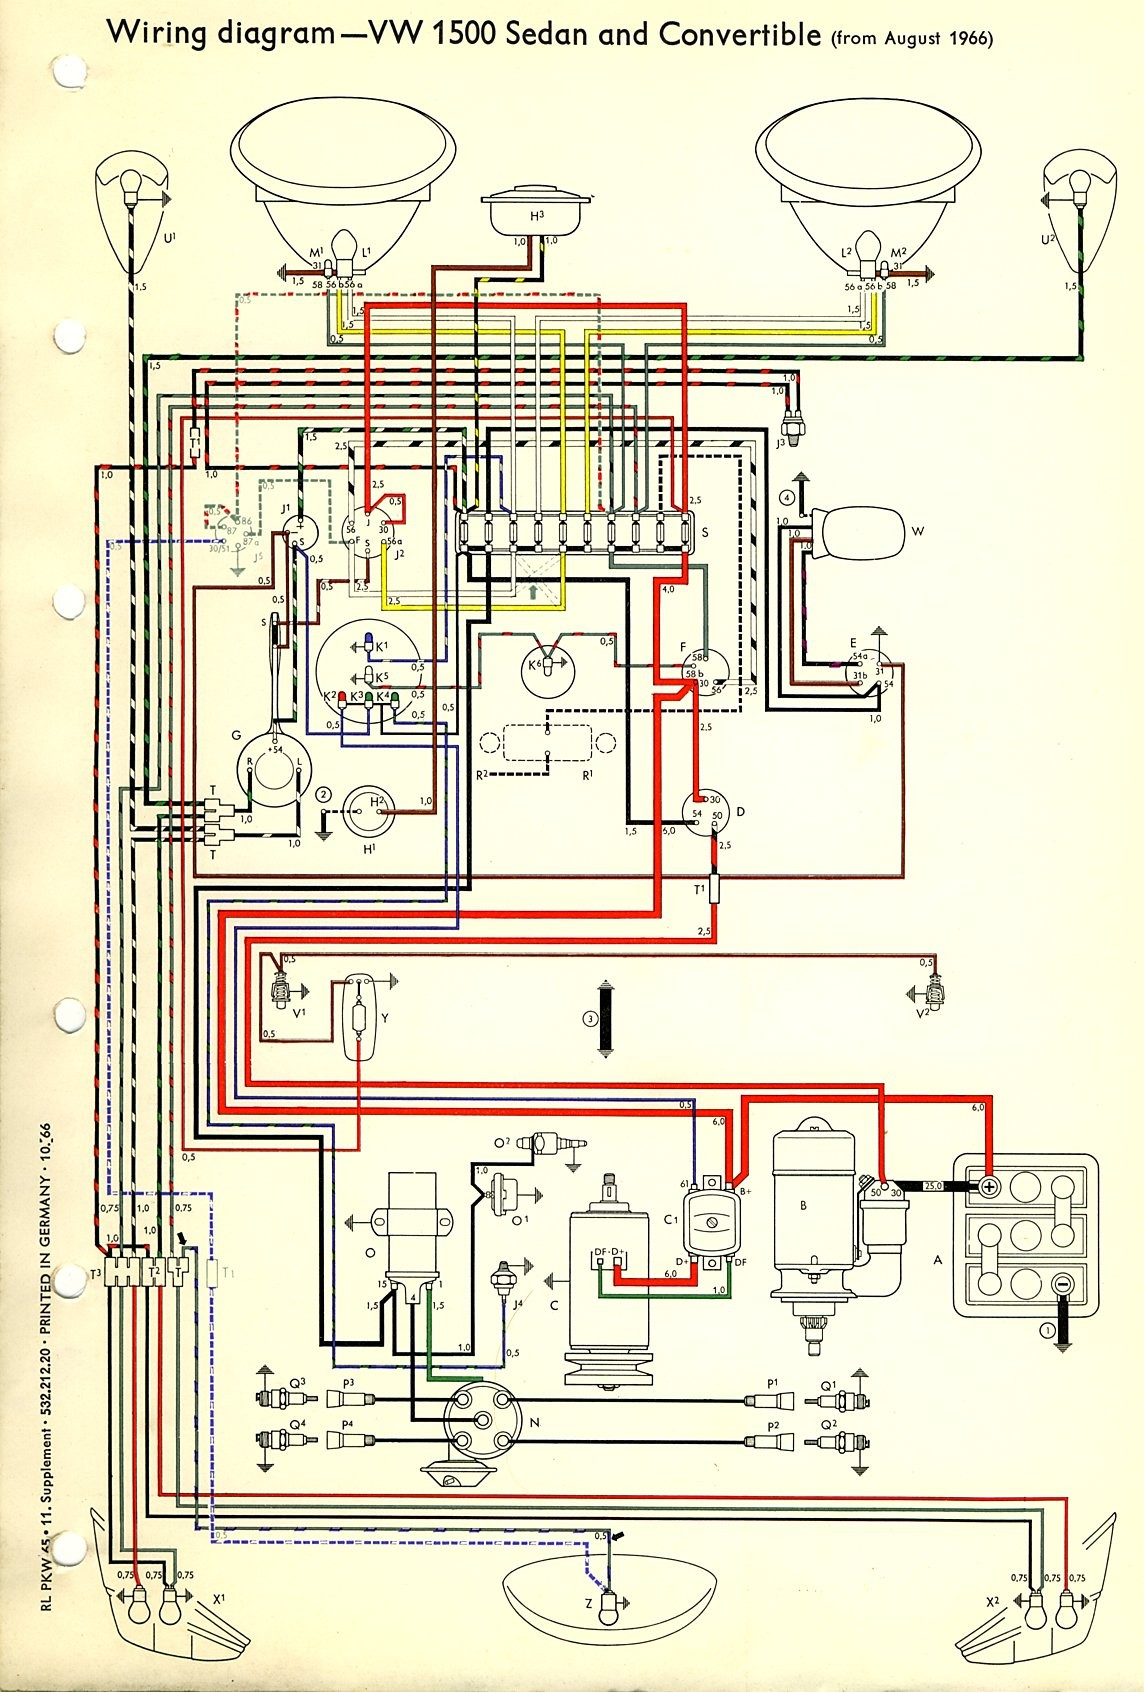 Vw Beetle Engine Wiring Harness : Wire vw beetle engine diagrams best site wiring harness